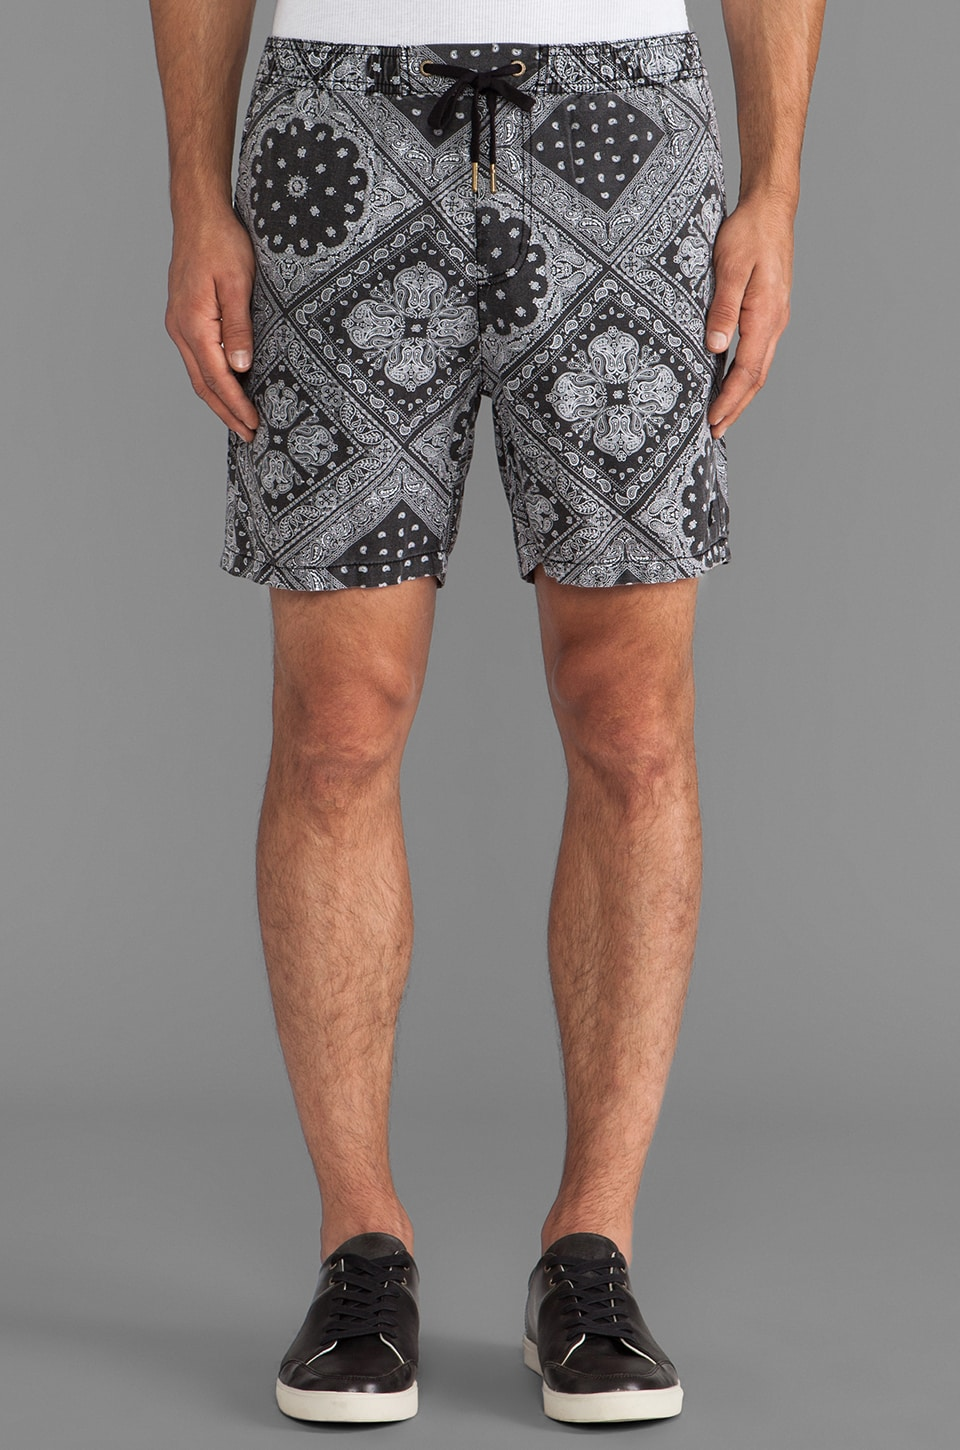 Zanerobe Tulum Short in Black